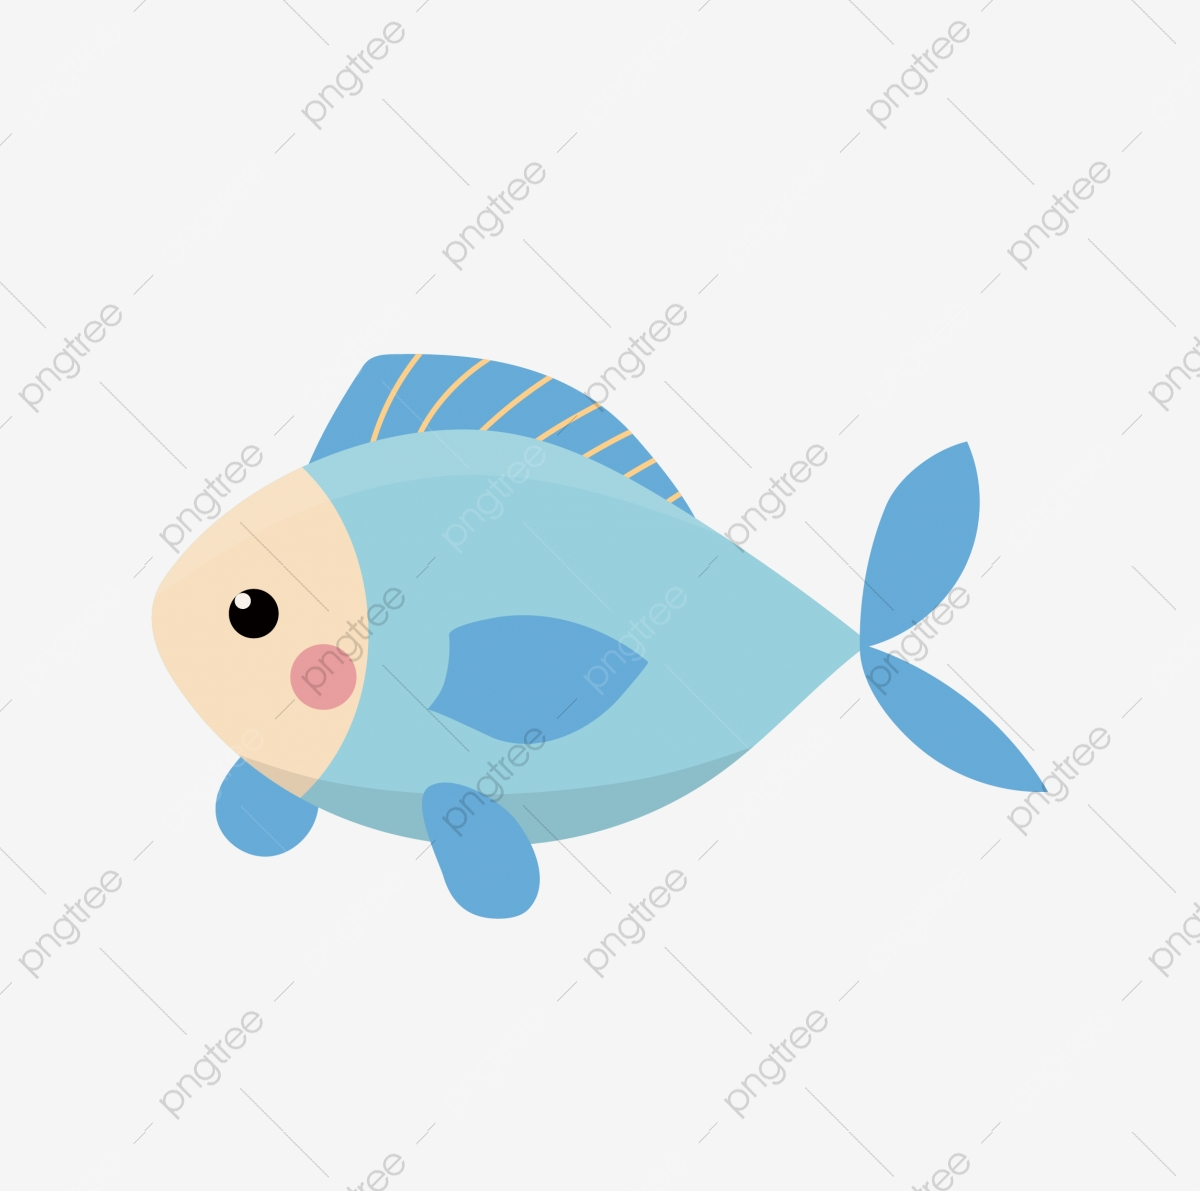 Small Fish Small Fish Cartoon Cute Cartoon Lovely Cute Cartoon Cartoon Png And Vector With Transparent Background For Free Download